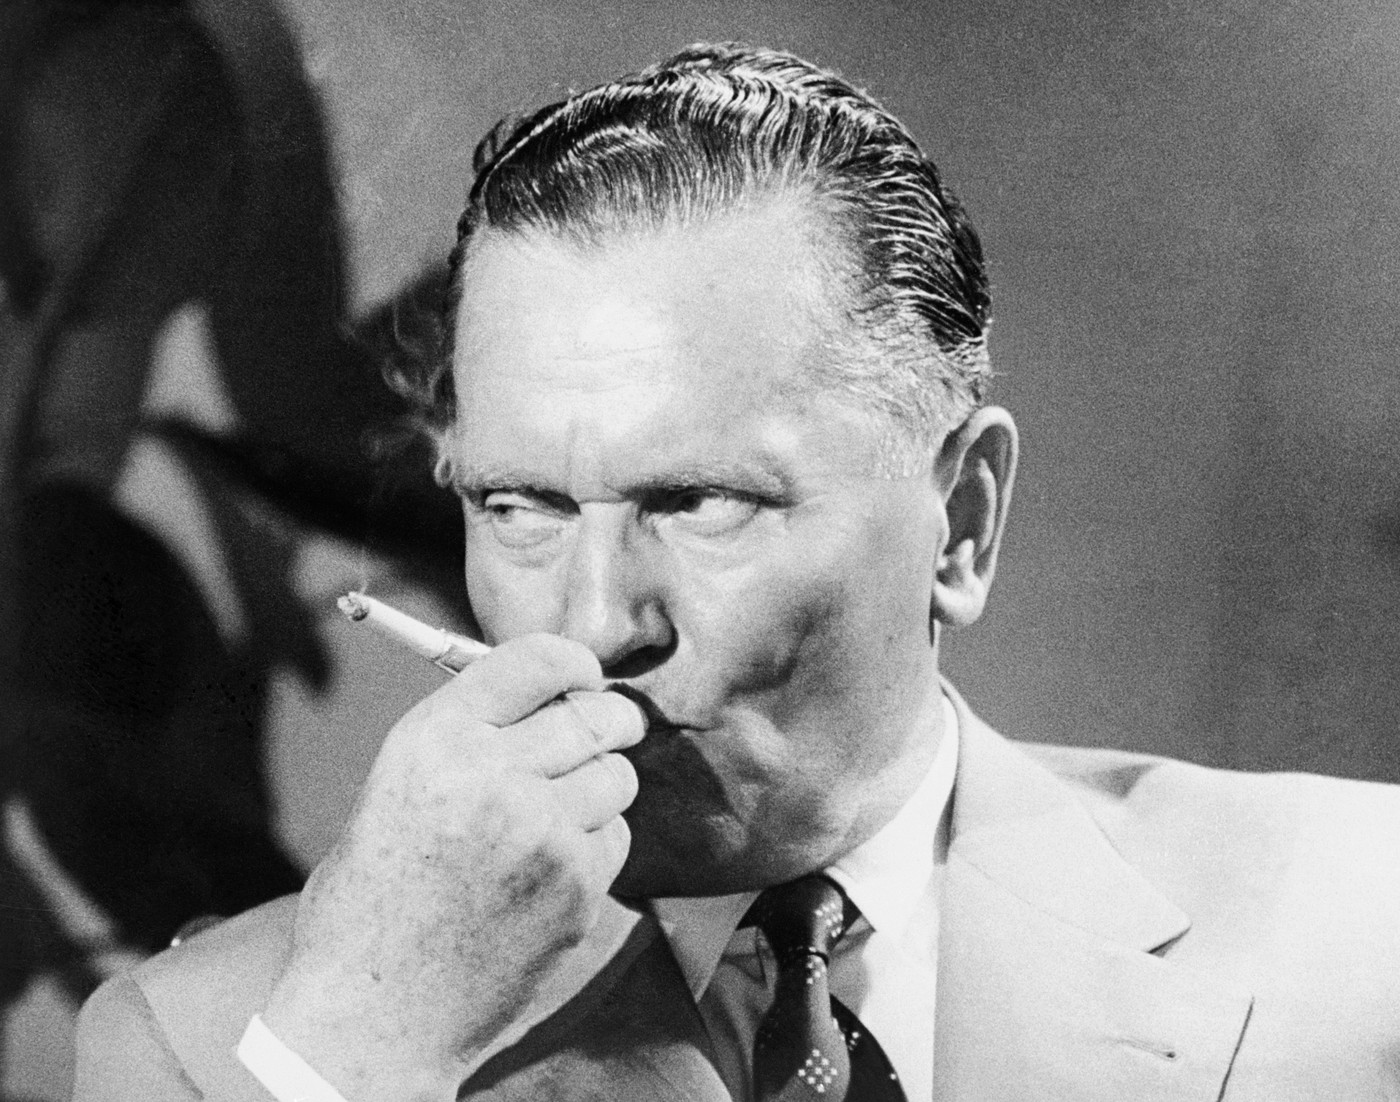 Original caption: Tito prepares for television. Brioni, Yugoslavia: Yugoslav president Josip Broz Tito takes time out for a smoke at his summer home in the Adriatic while playing host to CBS reporter Edward R. Murrow and company. Murrow was on hand to film an interview with the Yugoslav leader for use on his See It Now program Sunday, June 30th, to be followed by a discussion featuring a panel of experts. The informal atmosphere of the resort island was enhanced by the presence of Tito's wife, Jovanka, at the interview session., Image: 16470417, License: Rights-managed, Restrictions: , Model Release: no, Credit line: Profimedia, Corbis